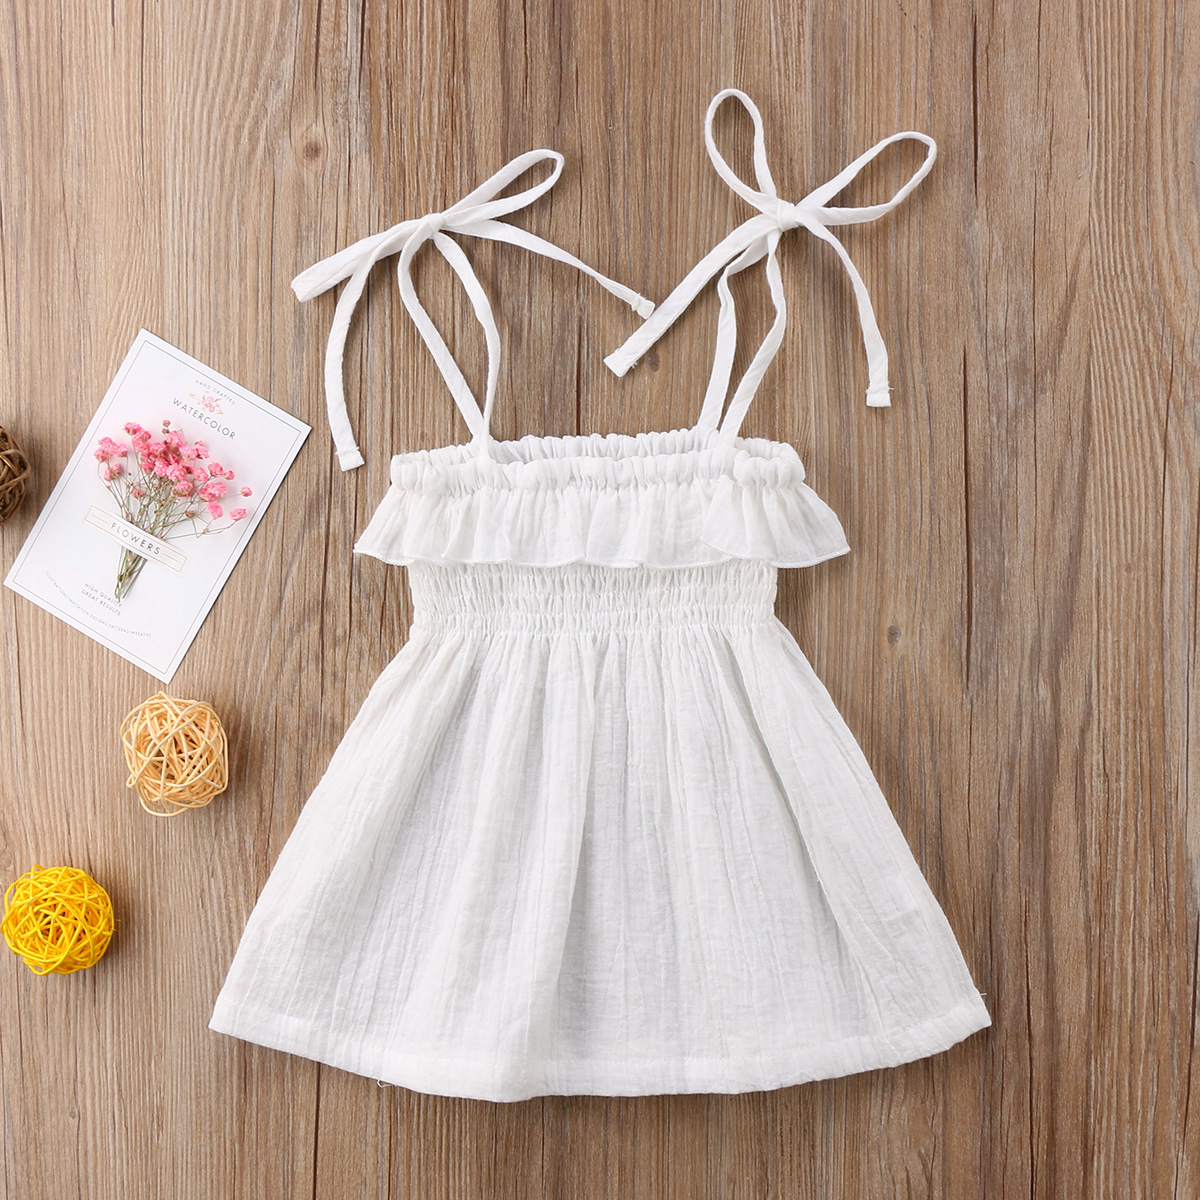 Infant Toddler Kids Baby Girls Halter Tutu Dress Party Beach Pageant Dresses